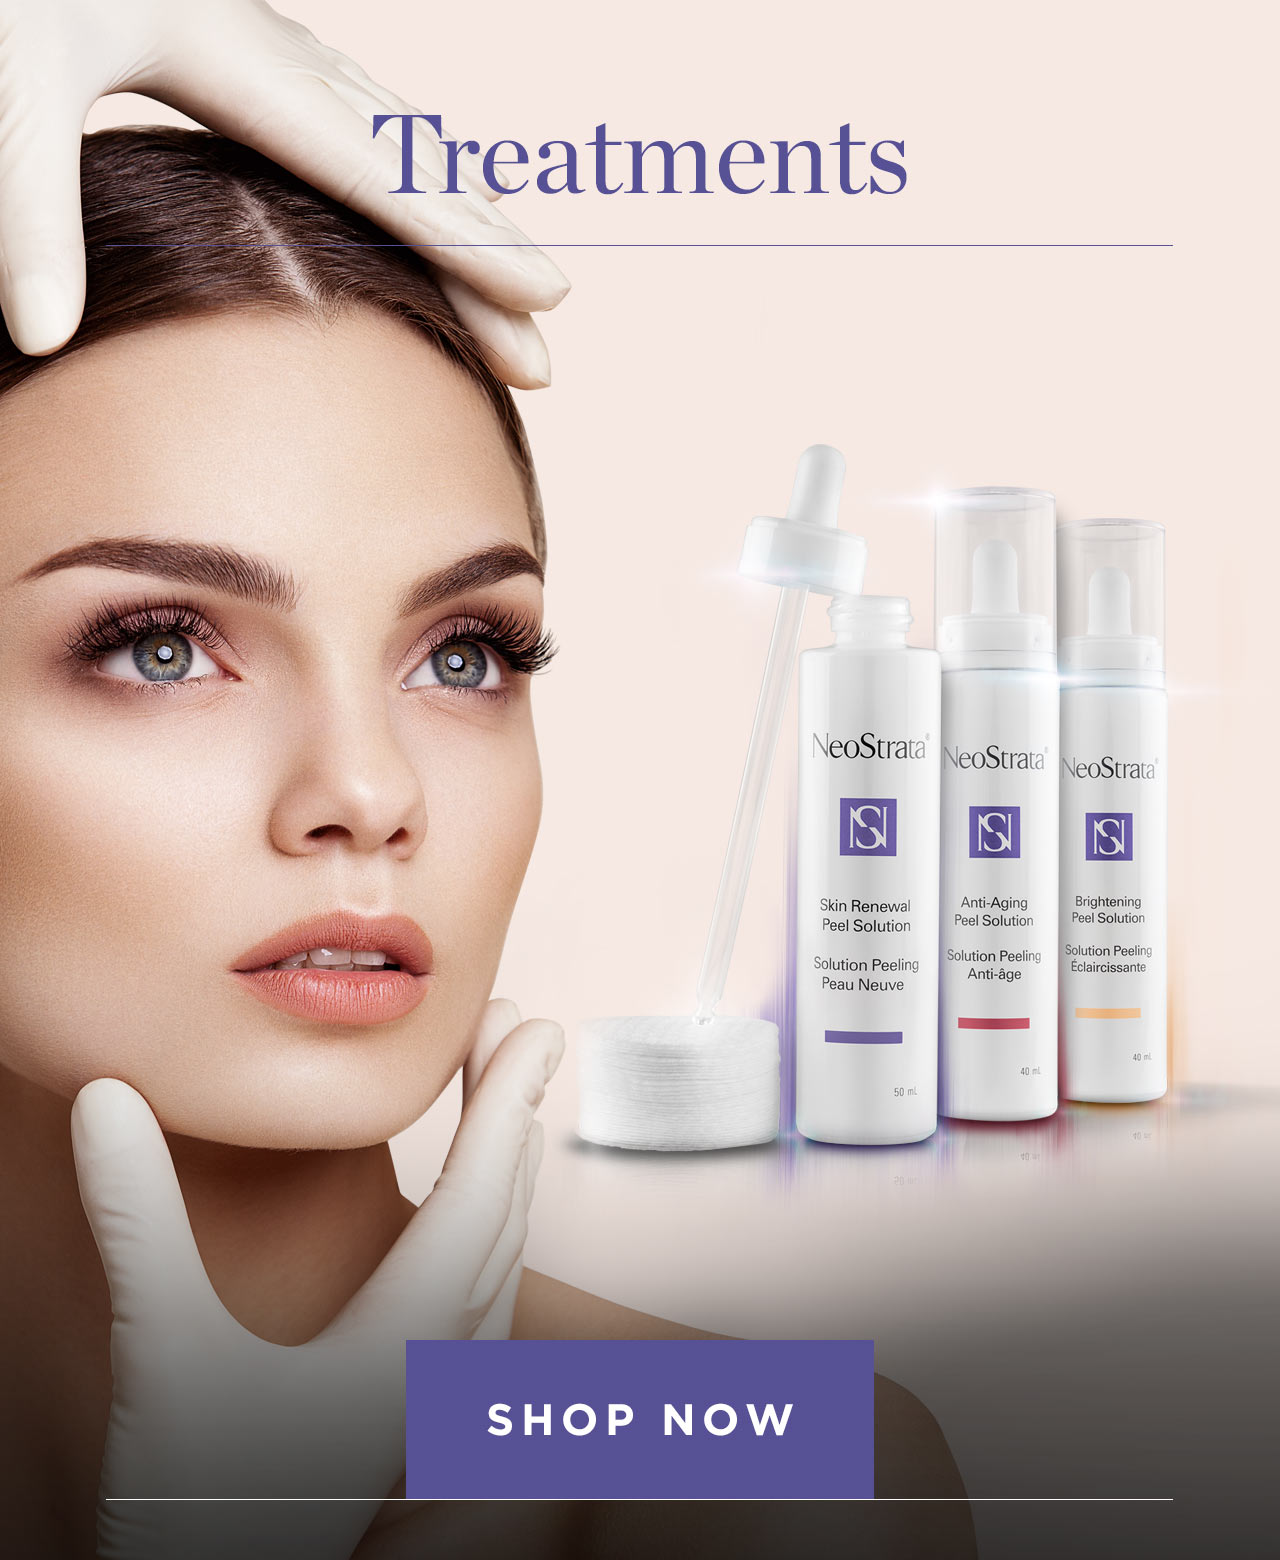 Treatments Shop Now